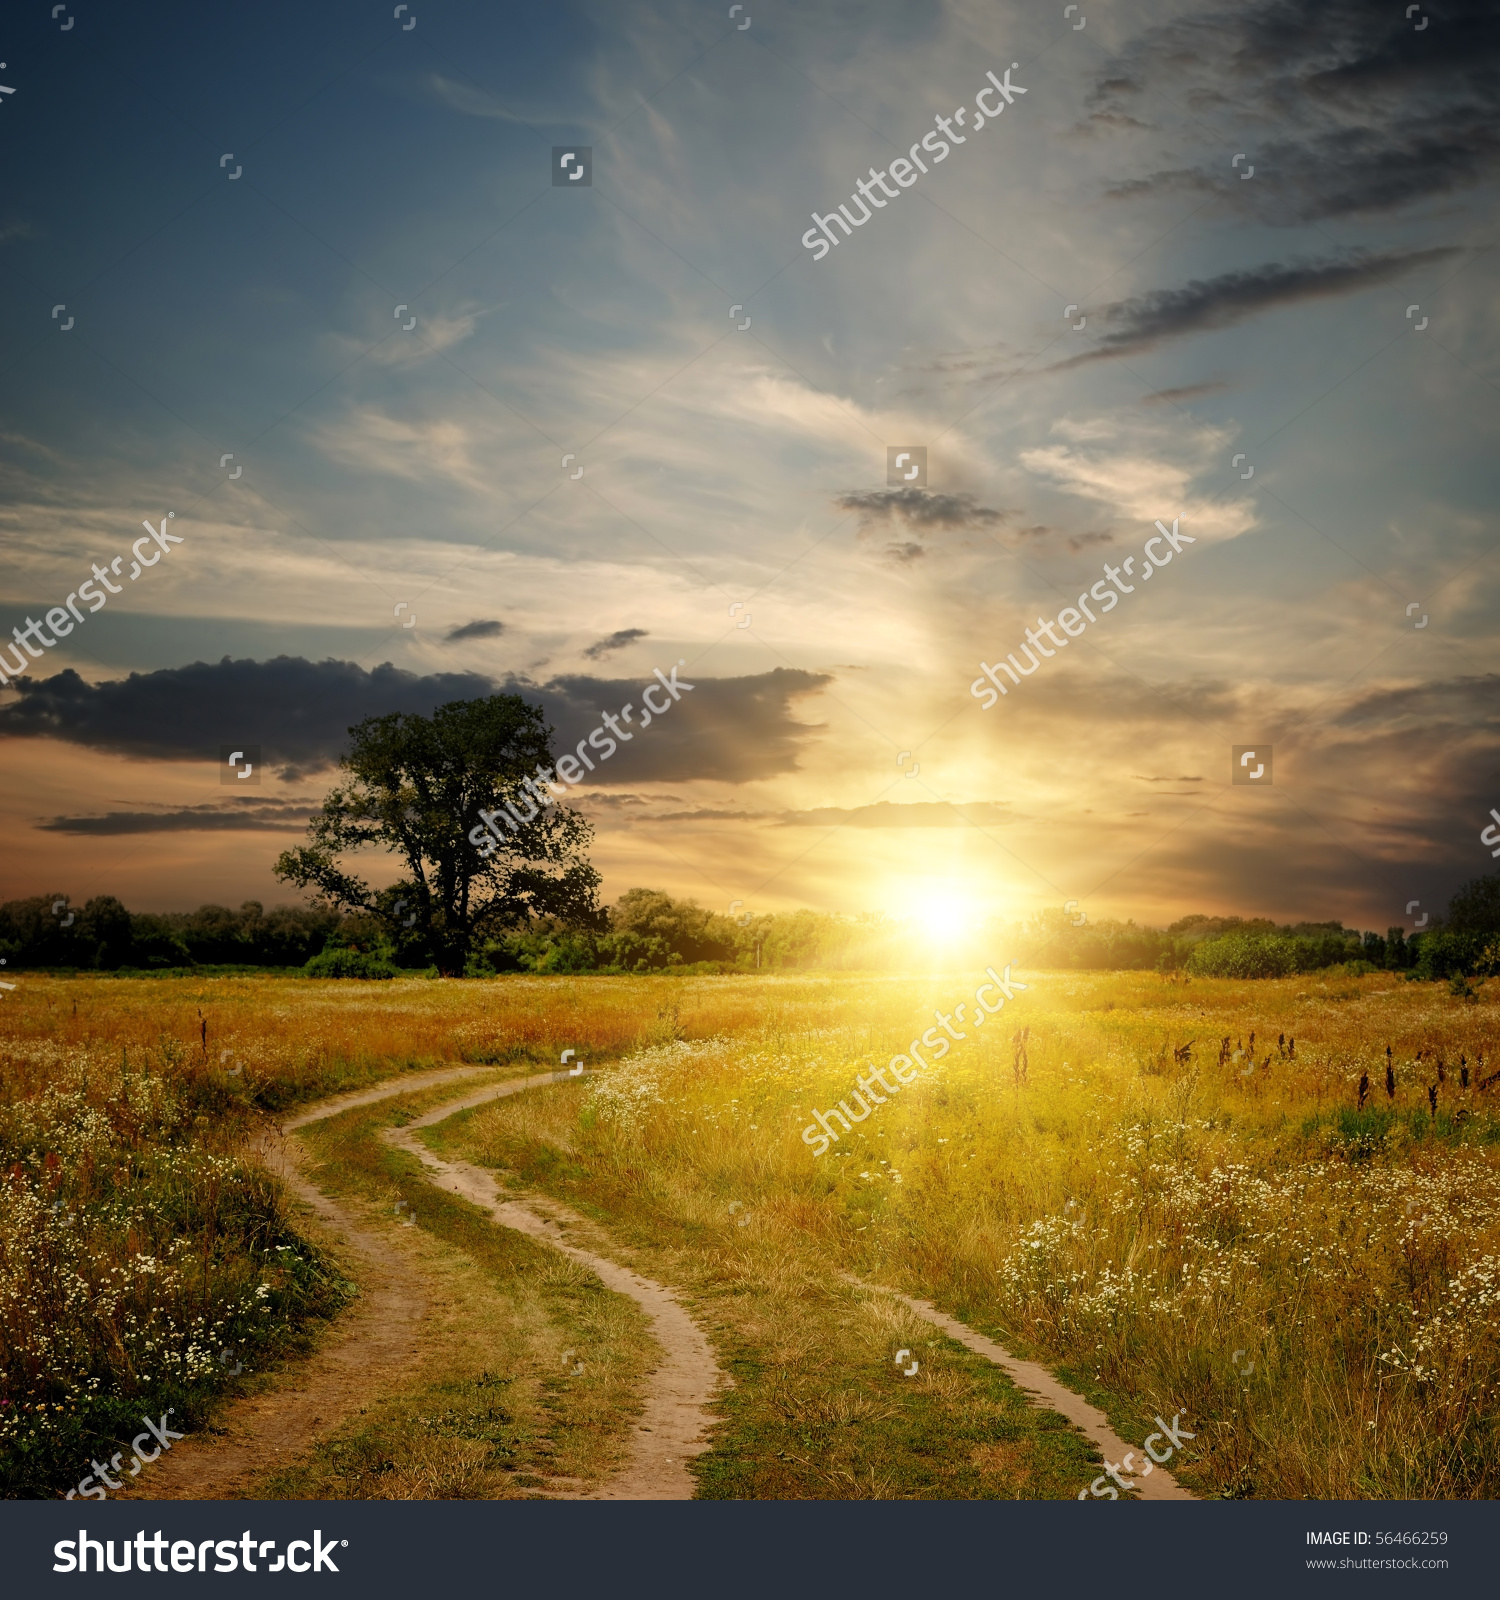 Field Dirt Road Sunset Evening Landscape Stock Photo 56466259.